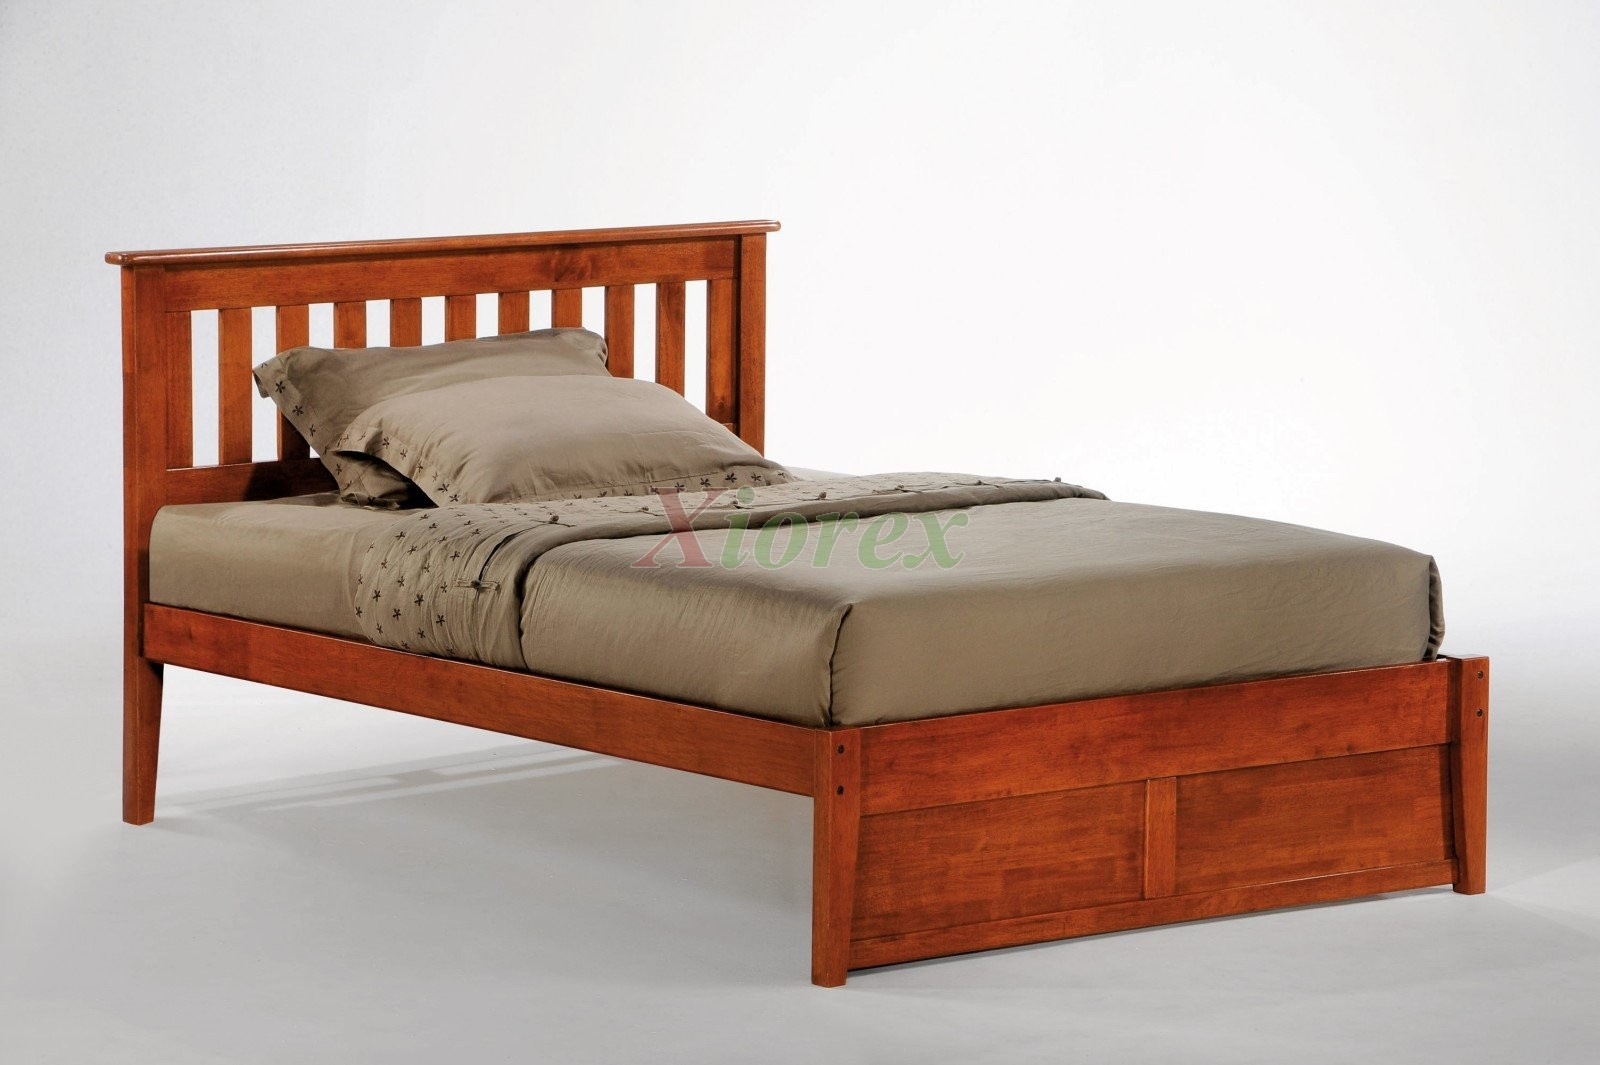 night and day rosemary bed platform bed w slat headboard  xiorex  - rosemary bed full size cherry slat headboard bed  xiorex wood beds